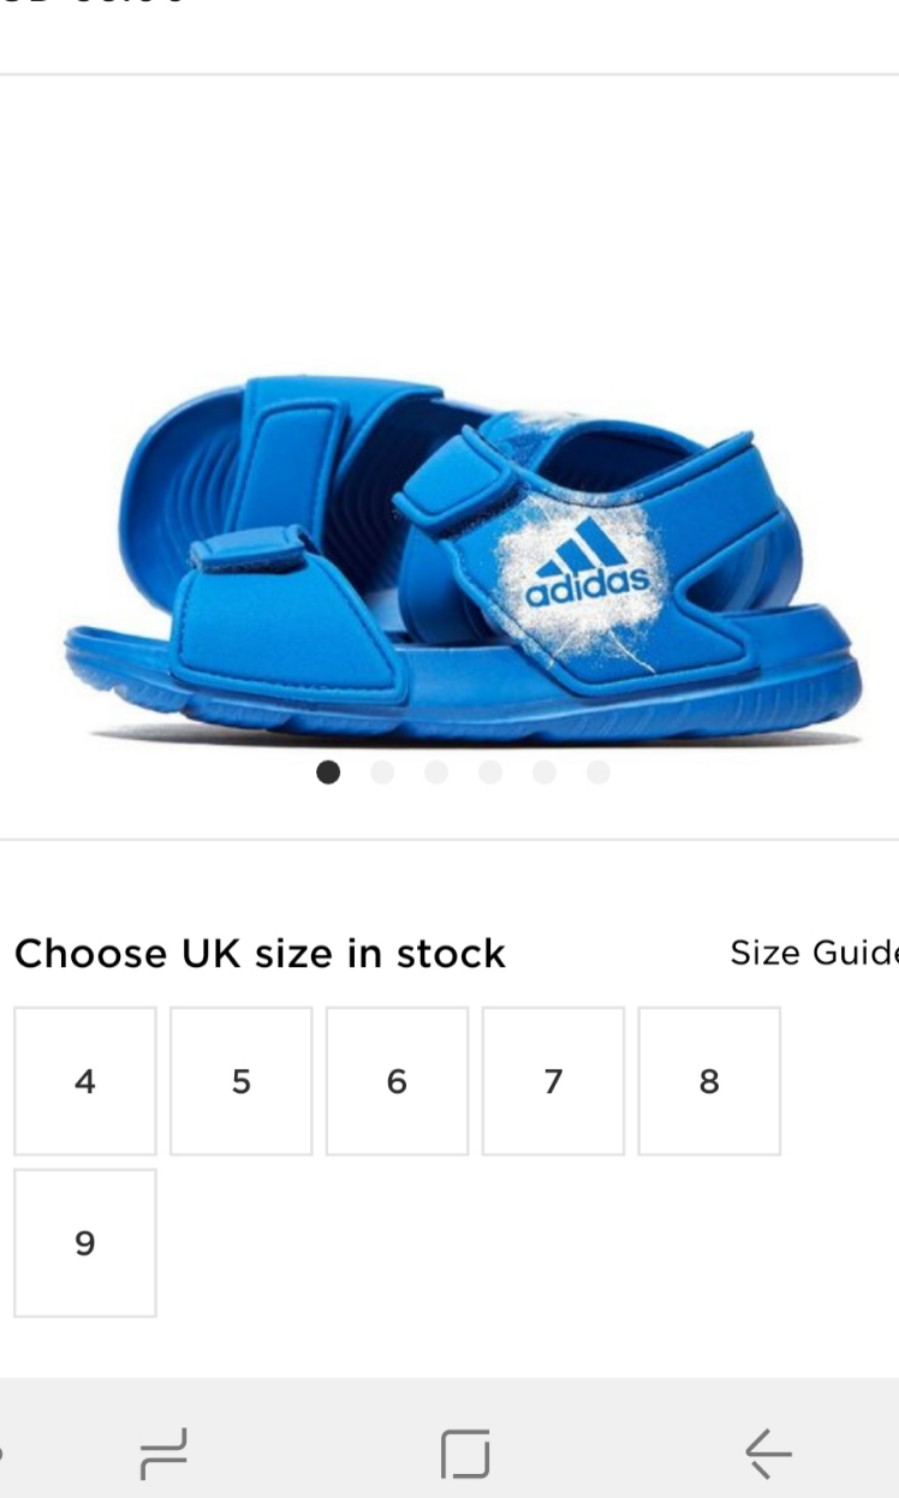 cd0820e958b4e BNWT Adidas AltaSwim Blue Sandals